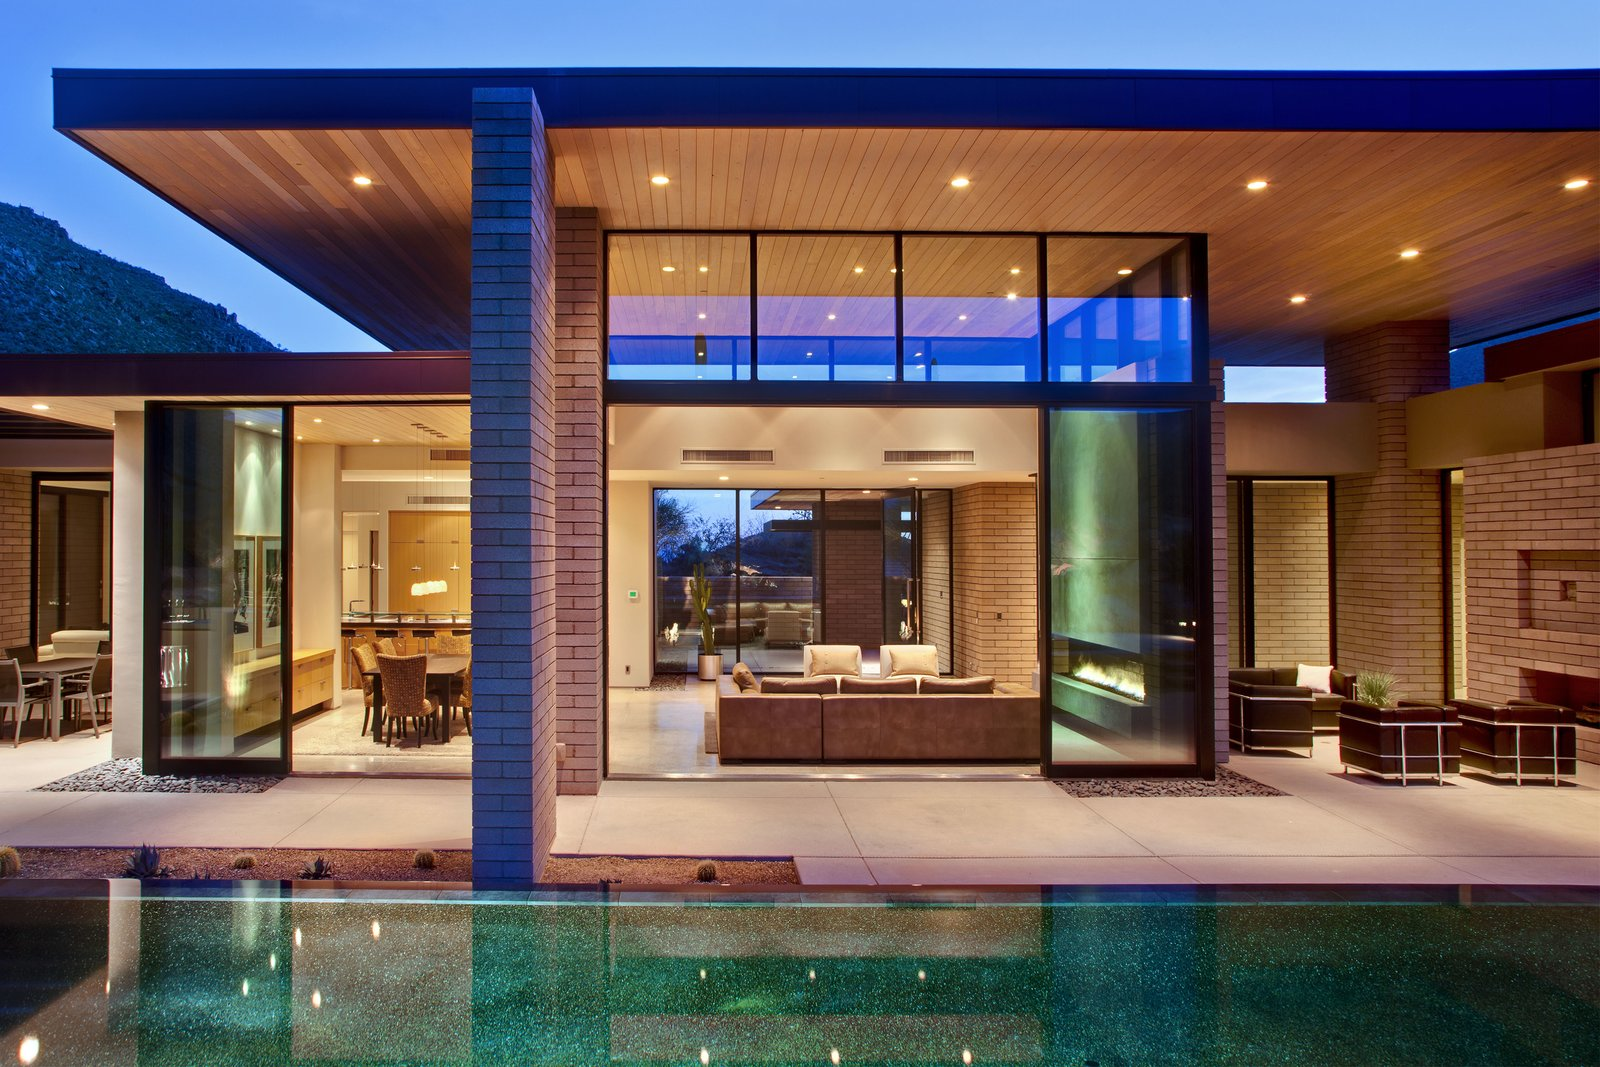 Outdoor, Desert, Back Yard, Large Pools, Tubs, Shower, Concrete Pools, Tubs, Shower, Infinity Pools, Tubs, Shower, and Concrete Patio, Porch, Deck  Desert Mountain Home by Kevin B Howard Architects